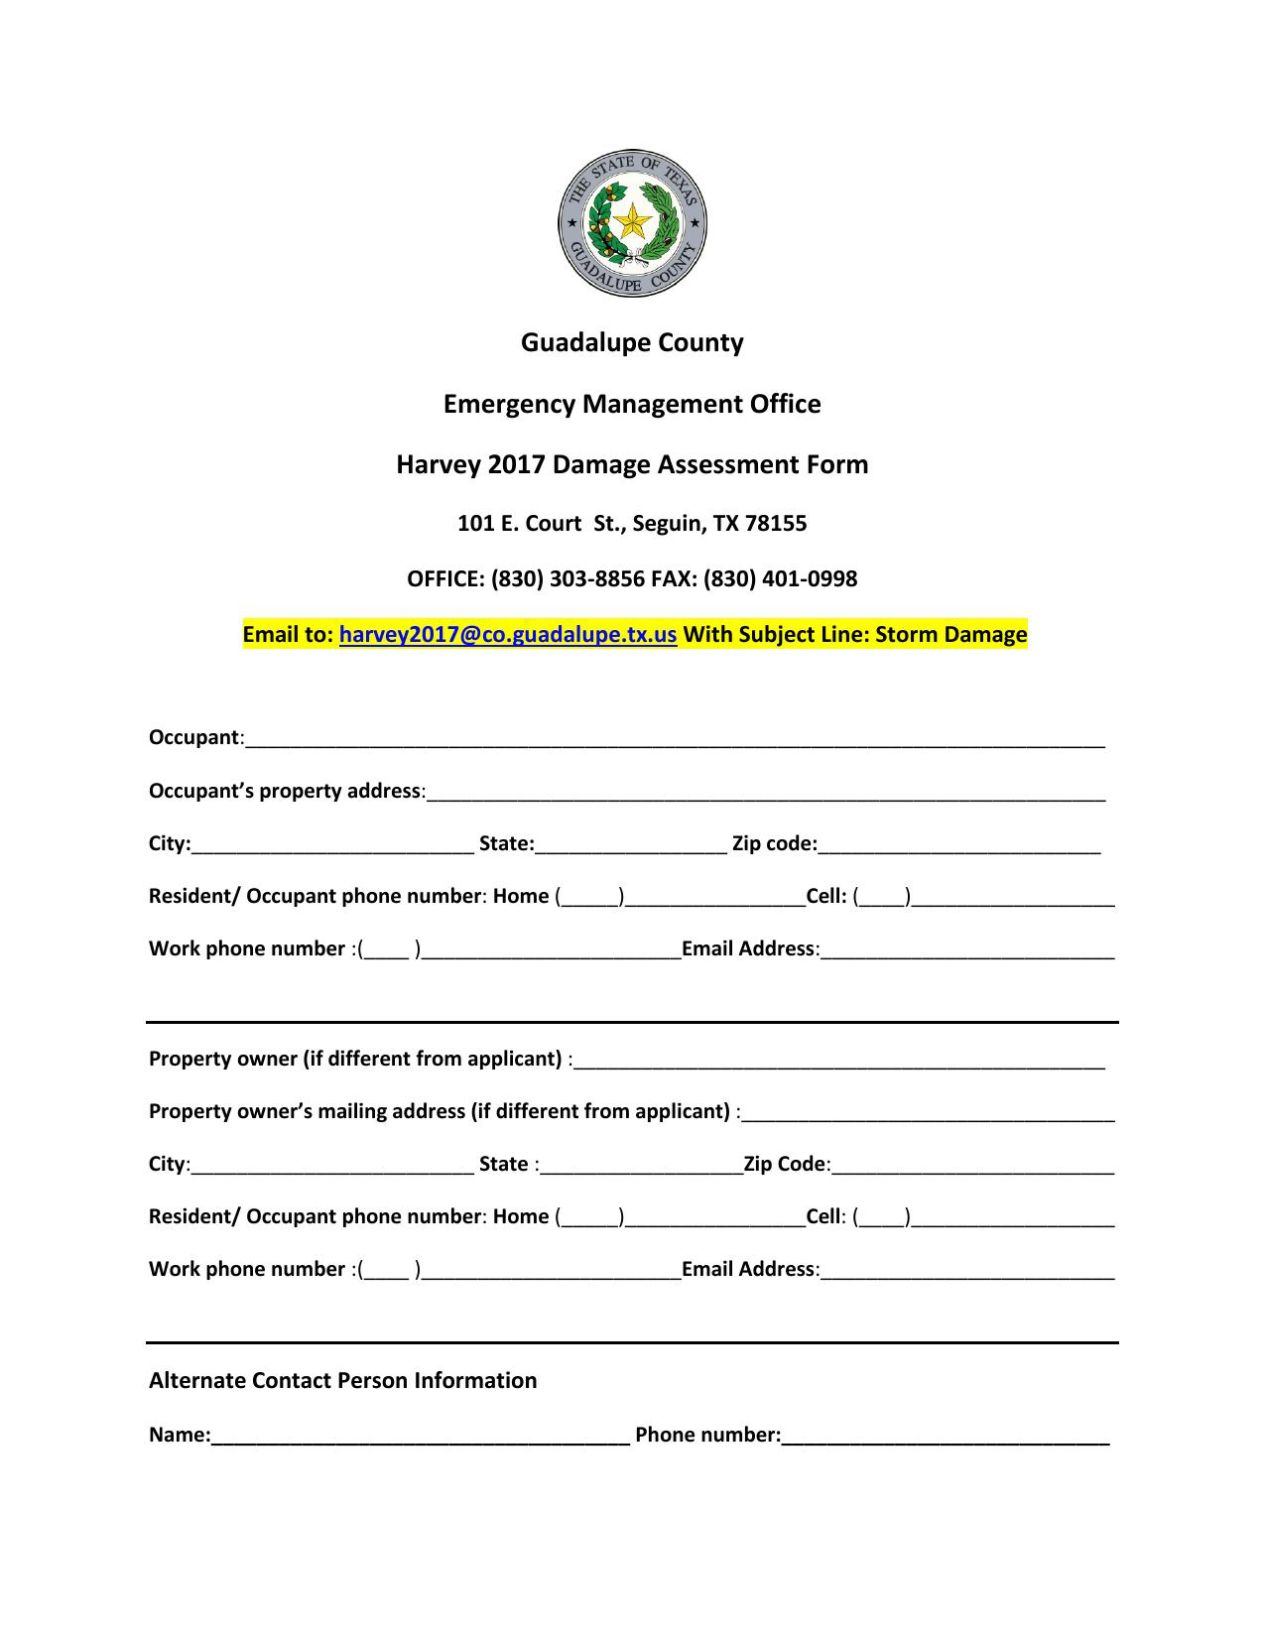 Guadalupe County Damage assessment form - Seguin Gazette: Home